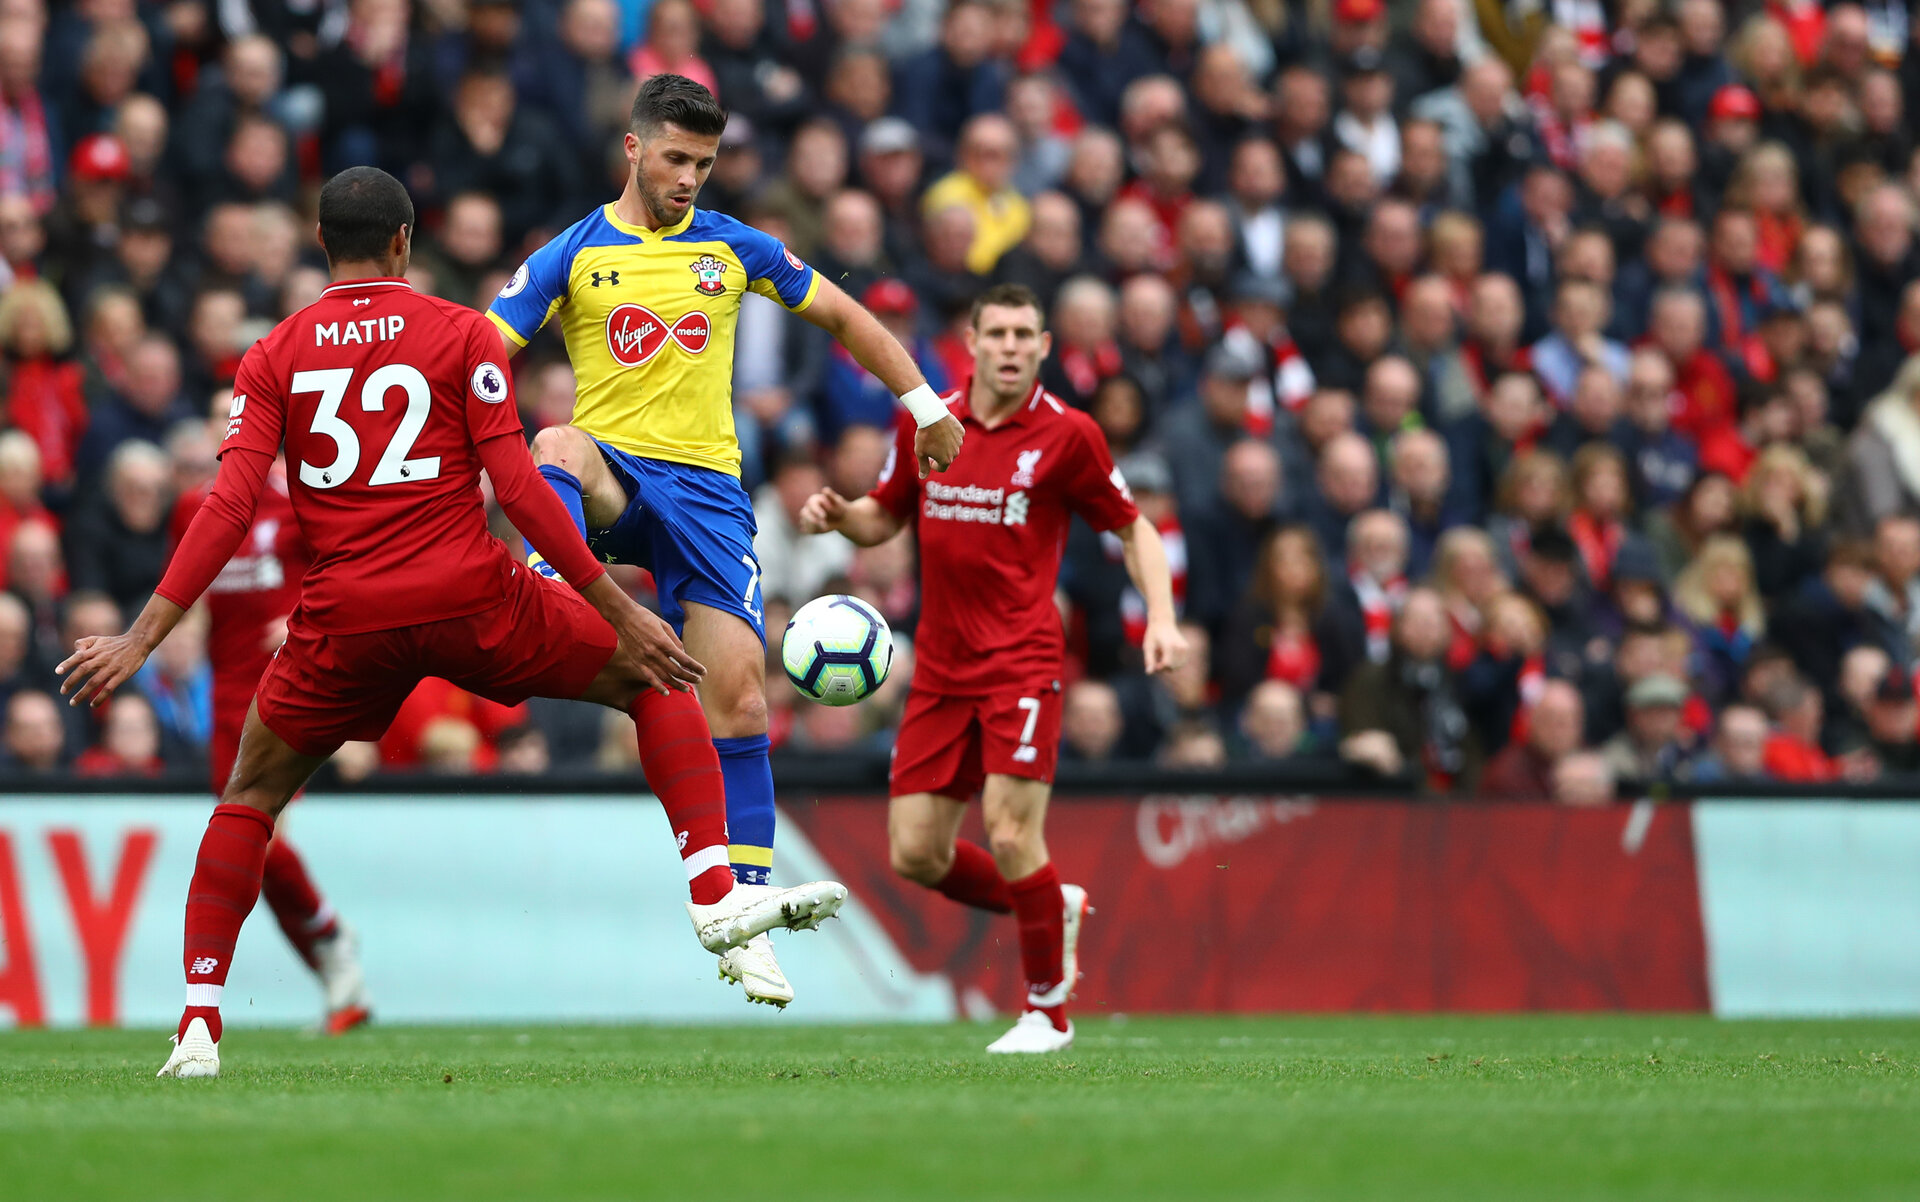 LIVERPOOL, ENGLAND - SEPTEMBER 22: Shane Long of Southampton during the Premier League match between Liverpool FC and Southampton FC at Anfield on September 22, 2018 in Liverpool, United Kingdom. (Photo by Matt Watson/Southampton FC via Getty Images)